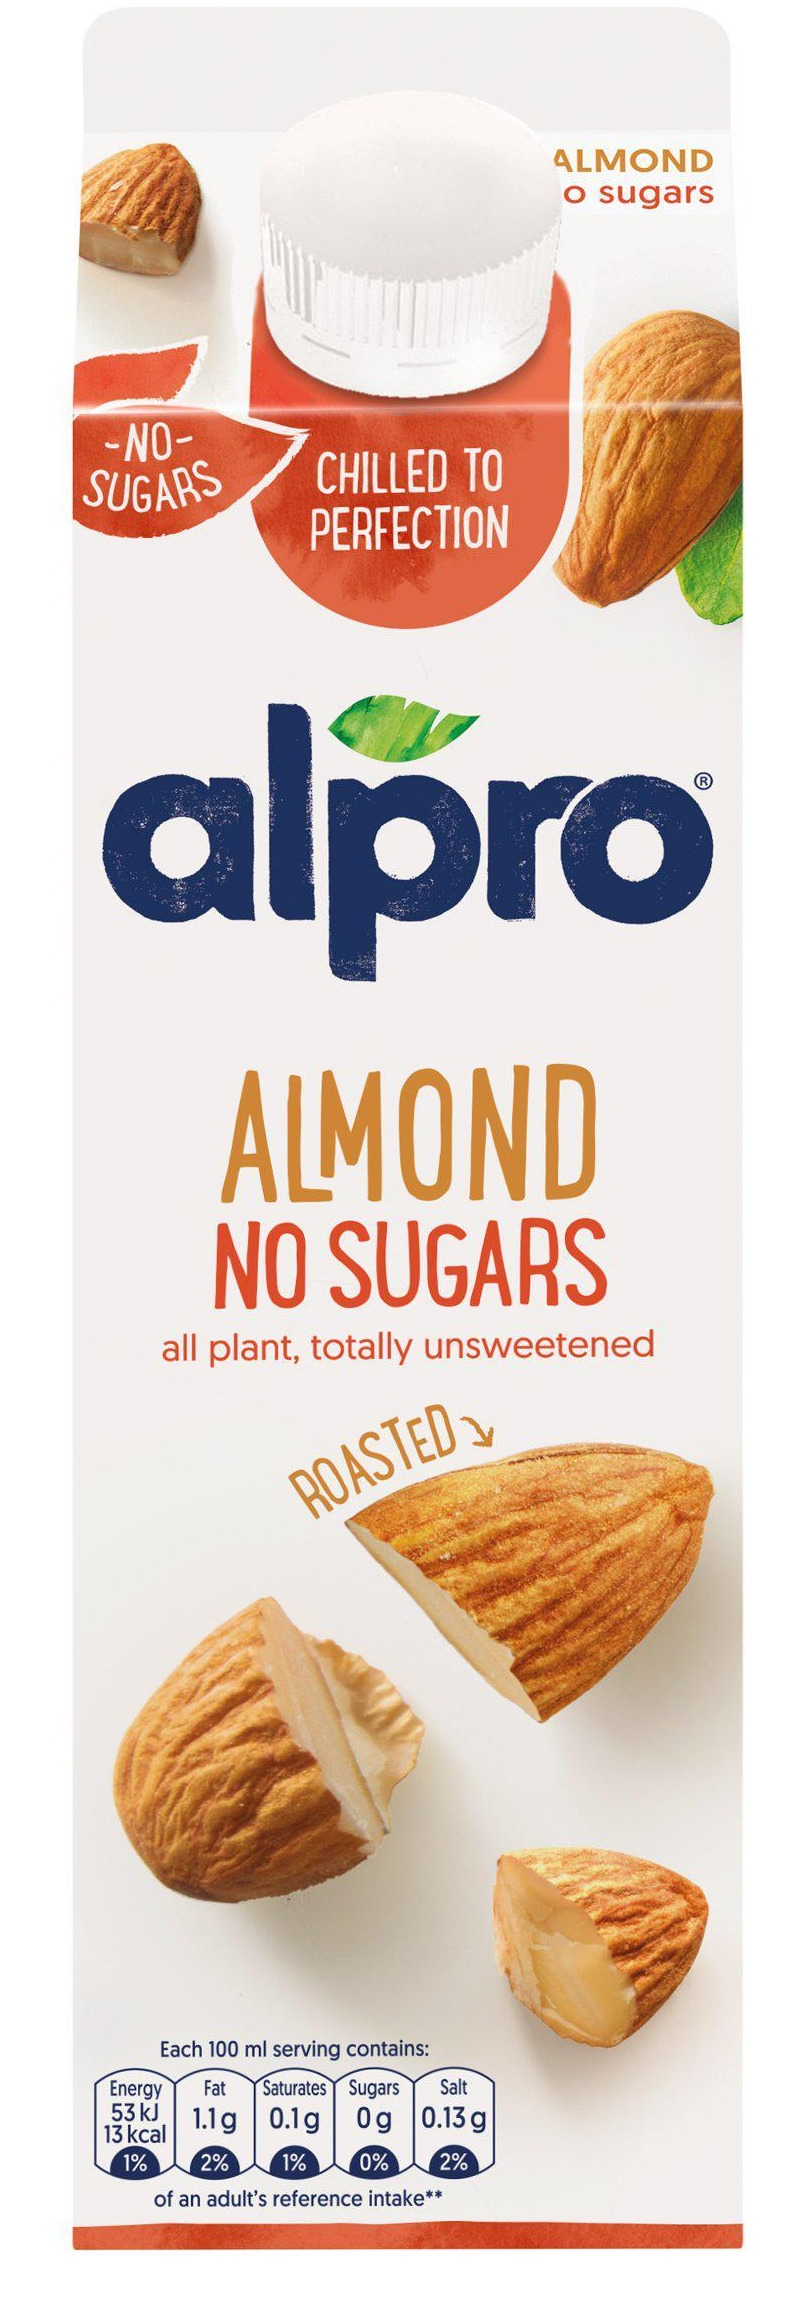 A litre of Alpro Almond Chilled Drink is on offer for £1 at Sainsbury's